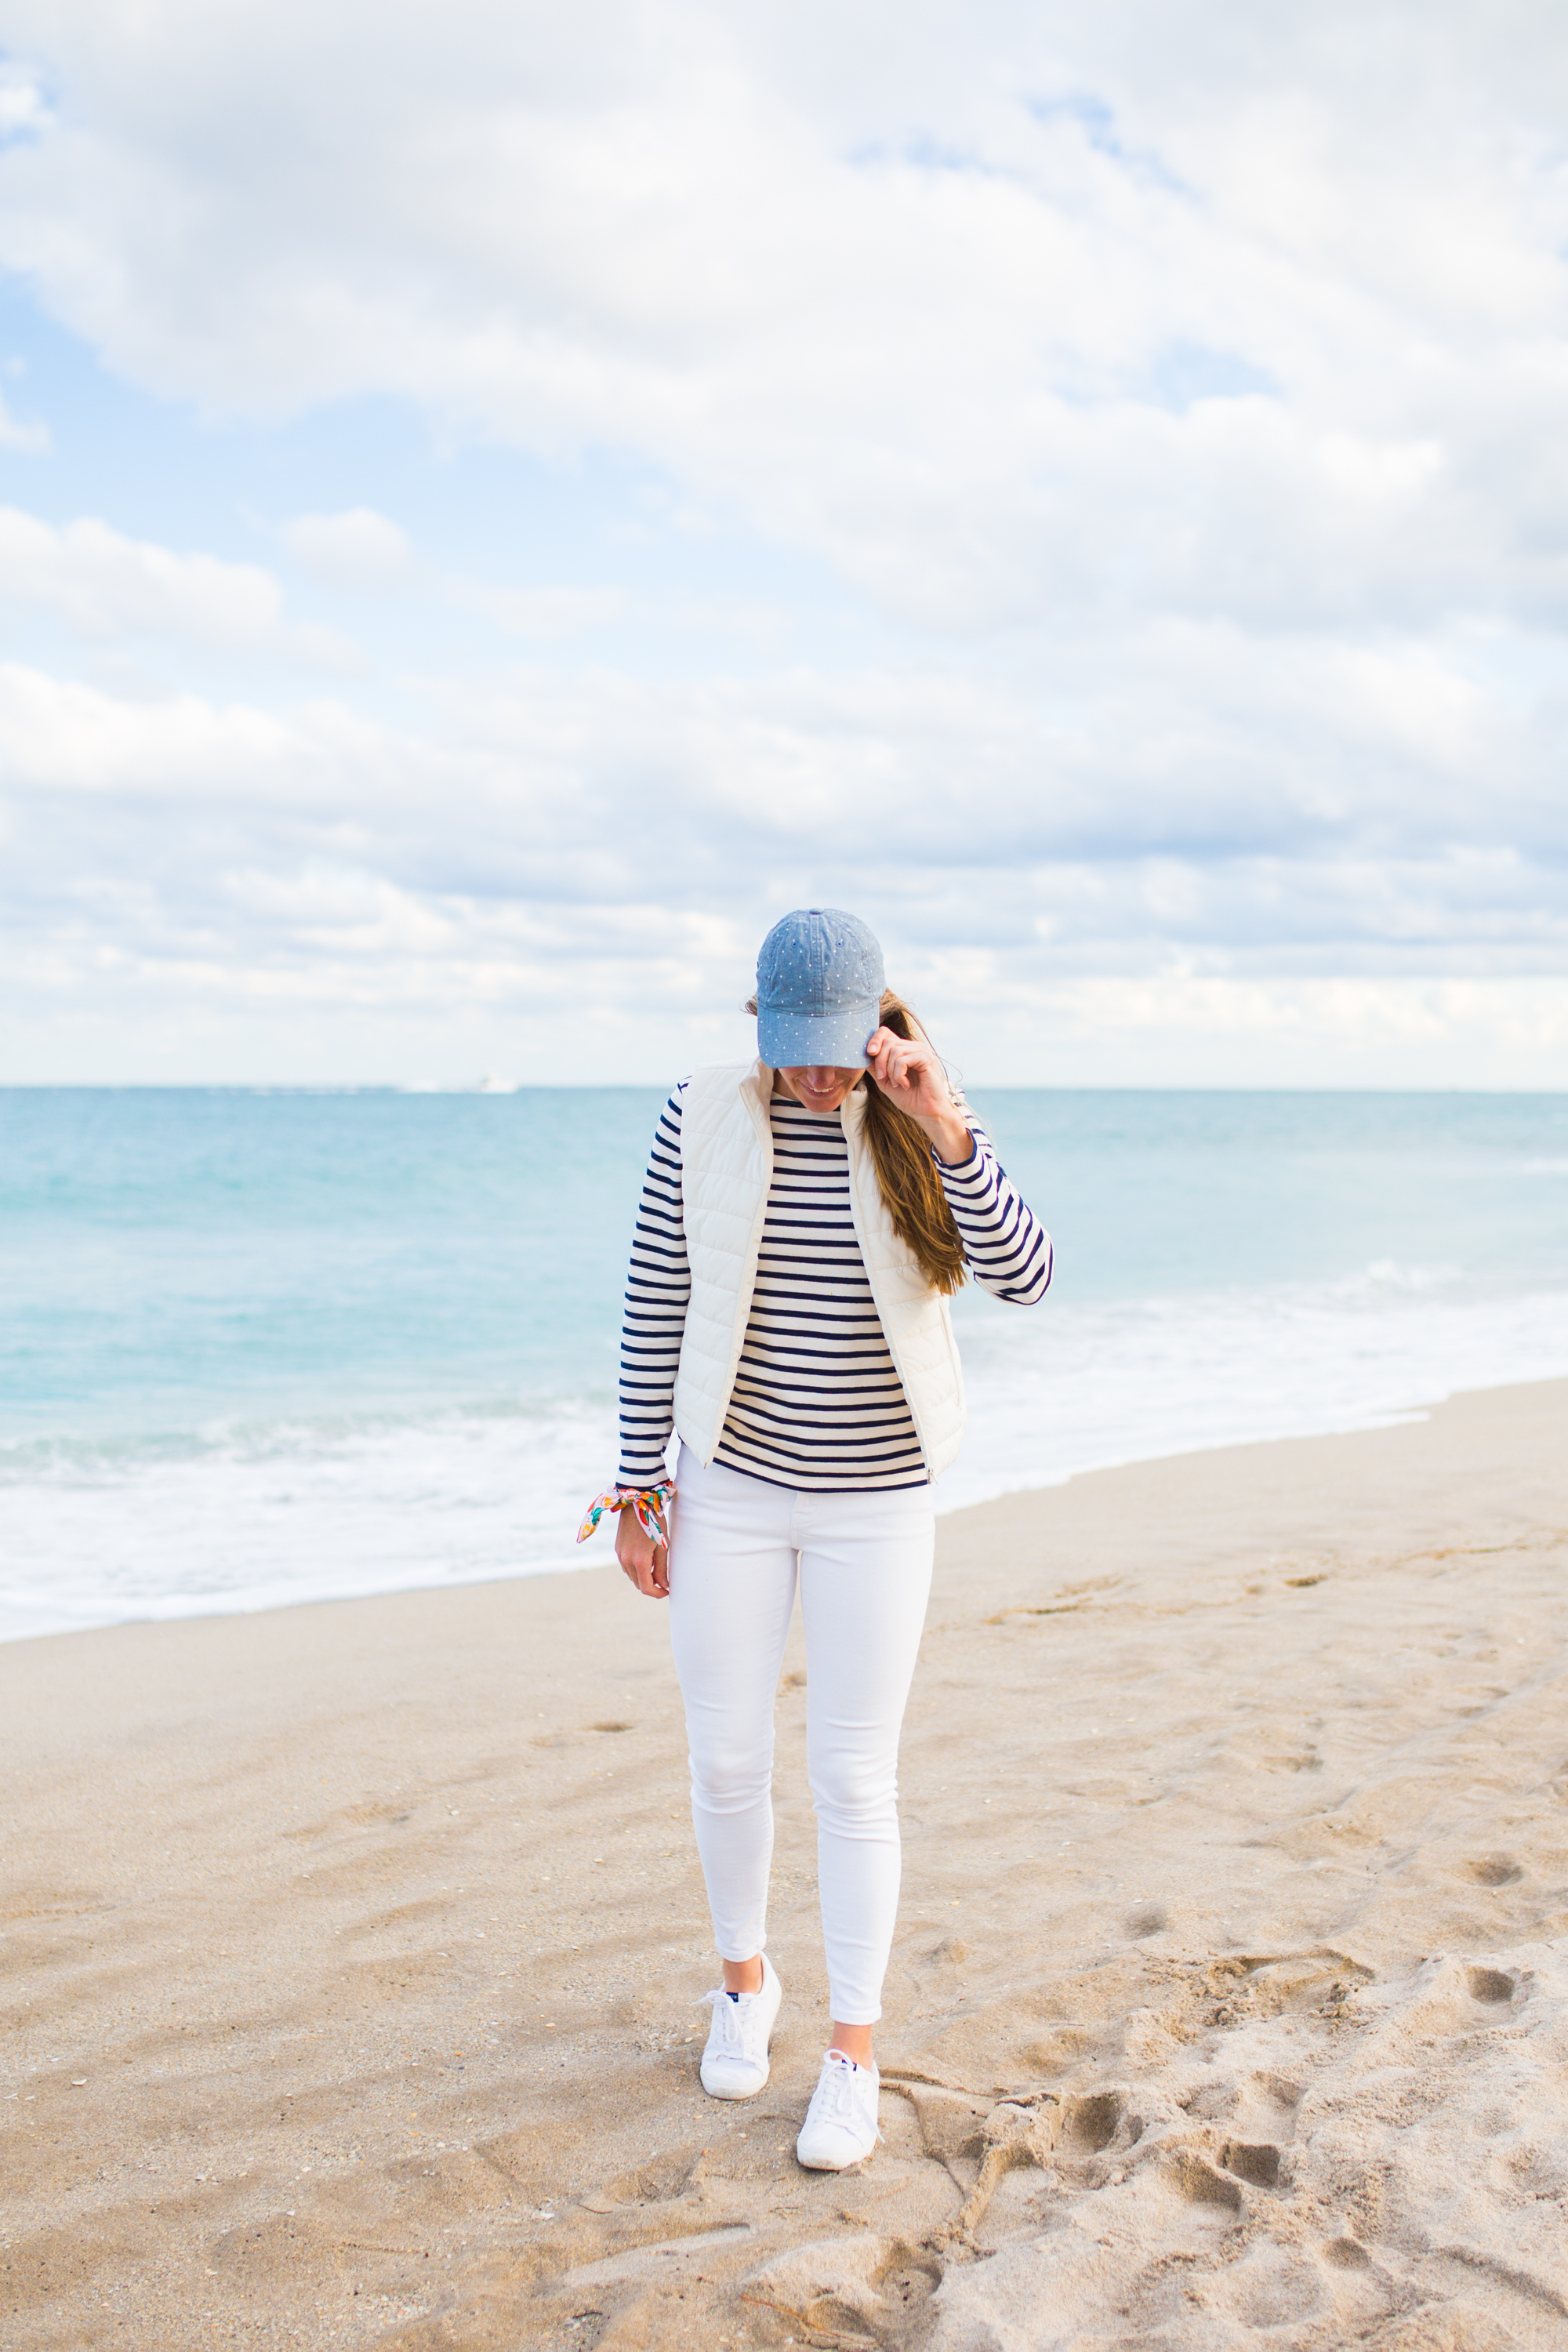 Saint James Breton Striped Shirt / American Style / Classic Style / Casual Outfit / How to Wear a Striped Top / White Jeans / Beach Style / Beach Outfit - Sunshine Style, A Florida Based Fashion Blog by Katie